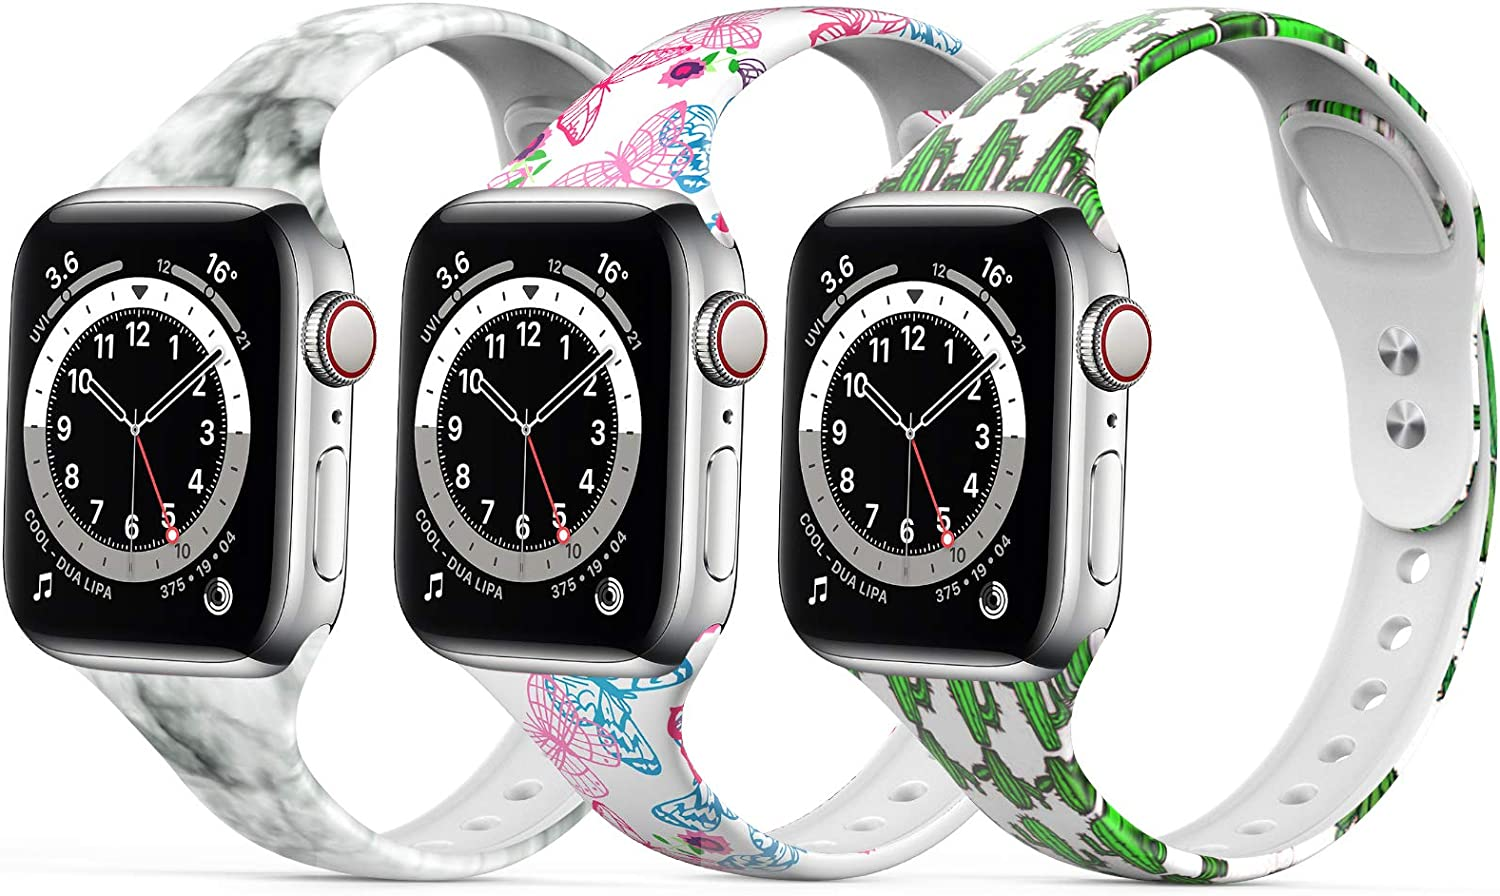 Floral Watch Bands Silicone Pattern Printed Sport Compatible with Apple Watch Band 38mm 40mm 42mm 44mm Fadeless Thin Replacement Strap for Iwatch Series SE 6/5/4/3/2/1